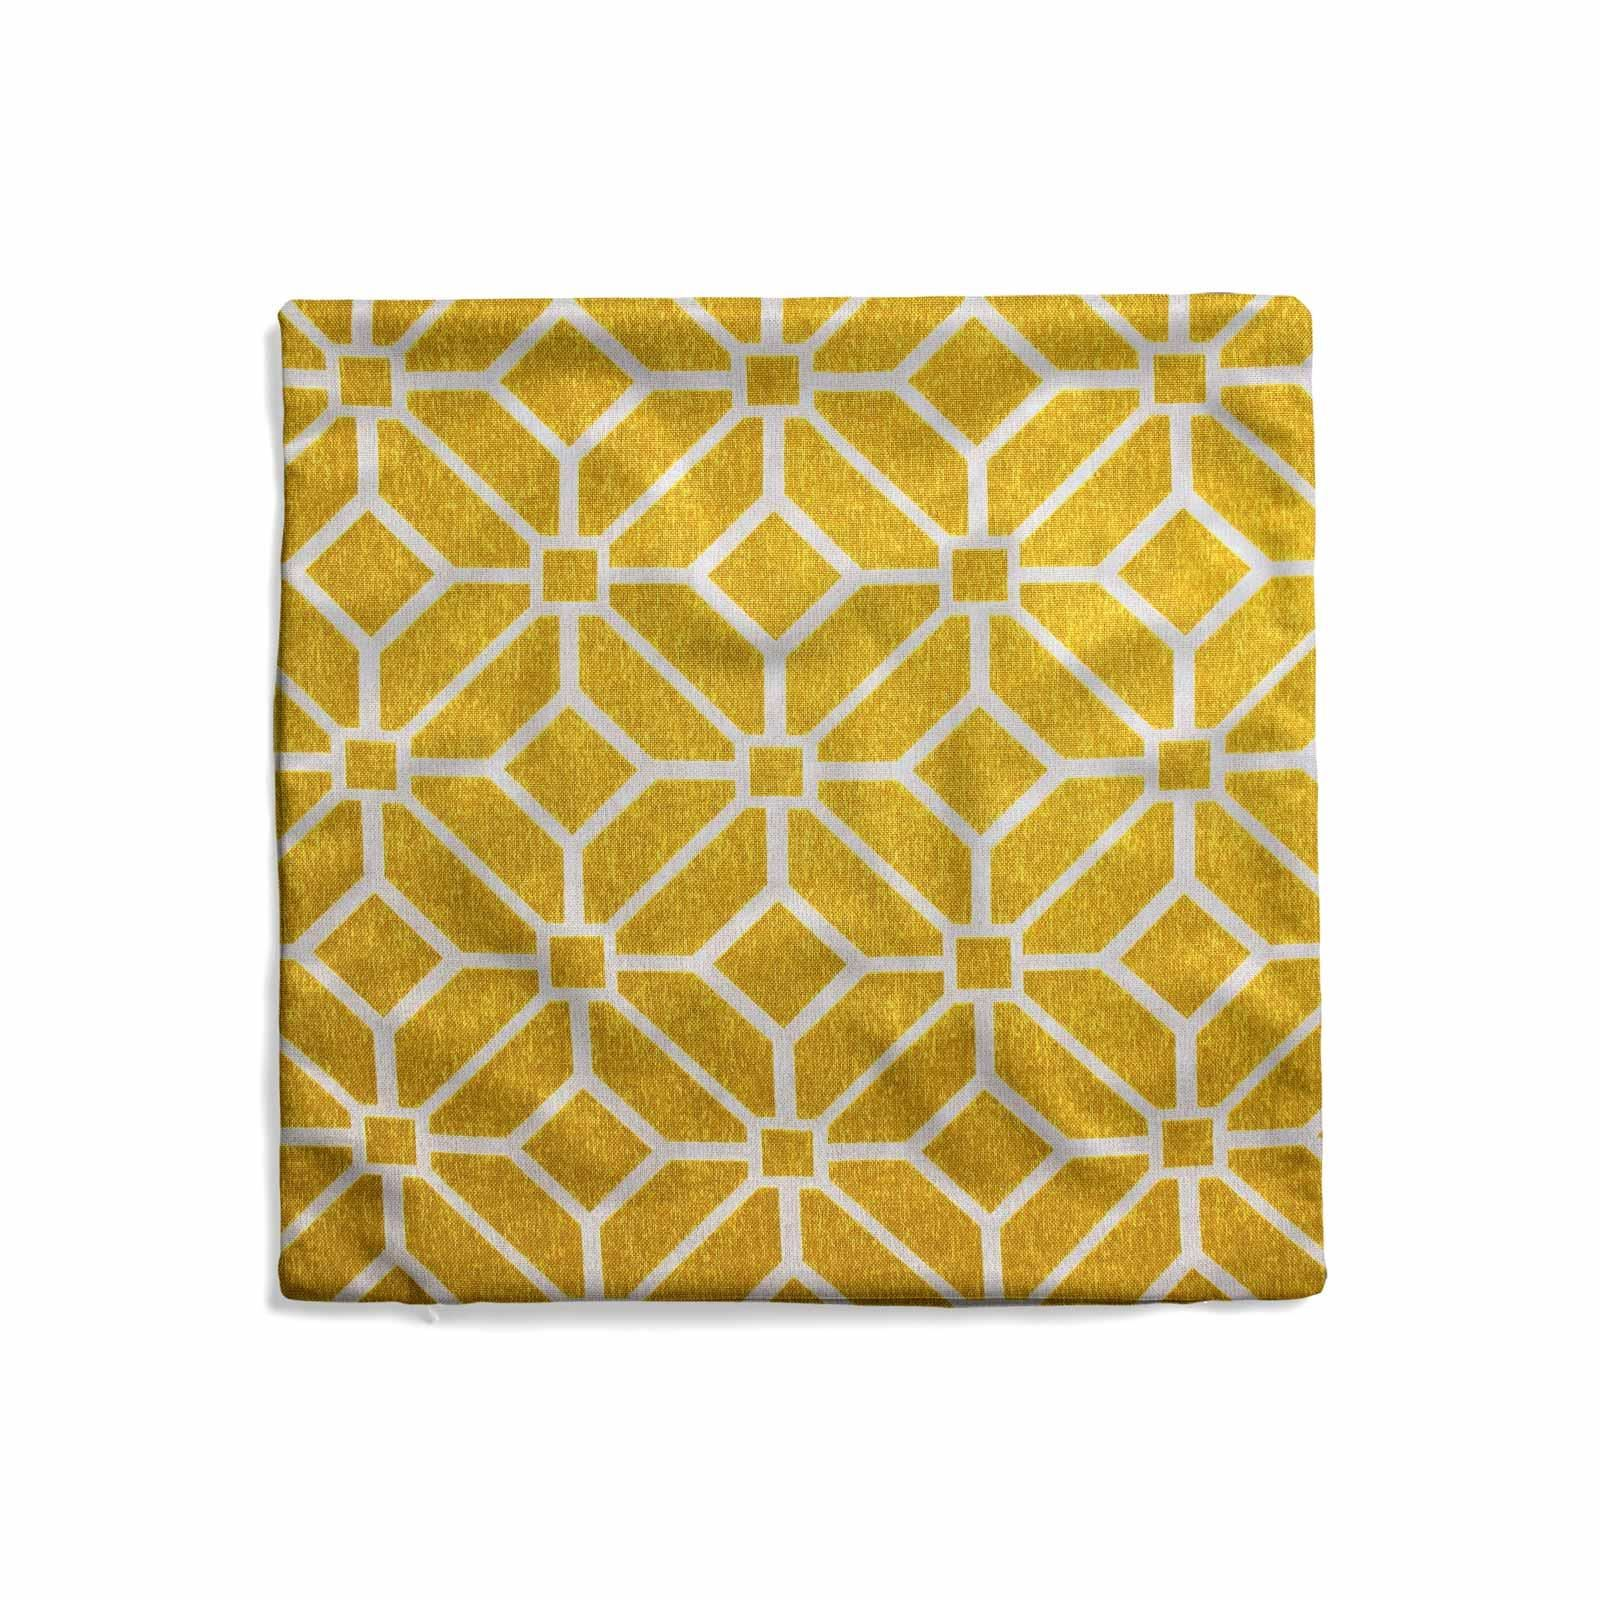 Grey-Ochre-Mustard-Cushion-Cover-Collection-17-034-18-034-Covers-Filled-Cushions thumbnail 94